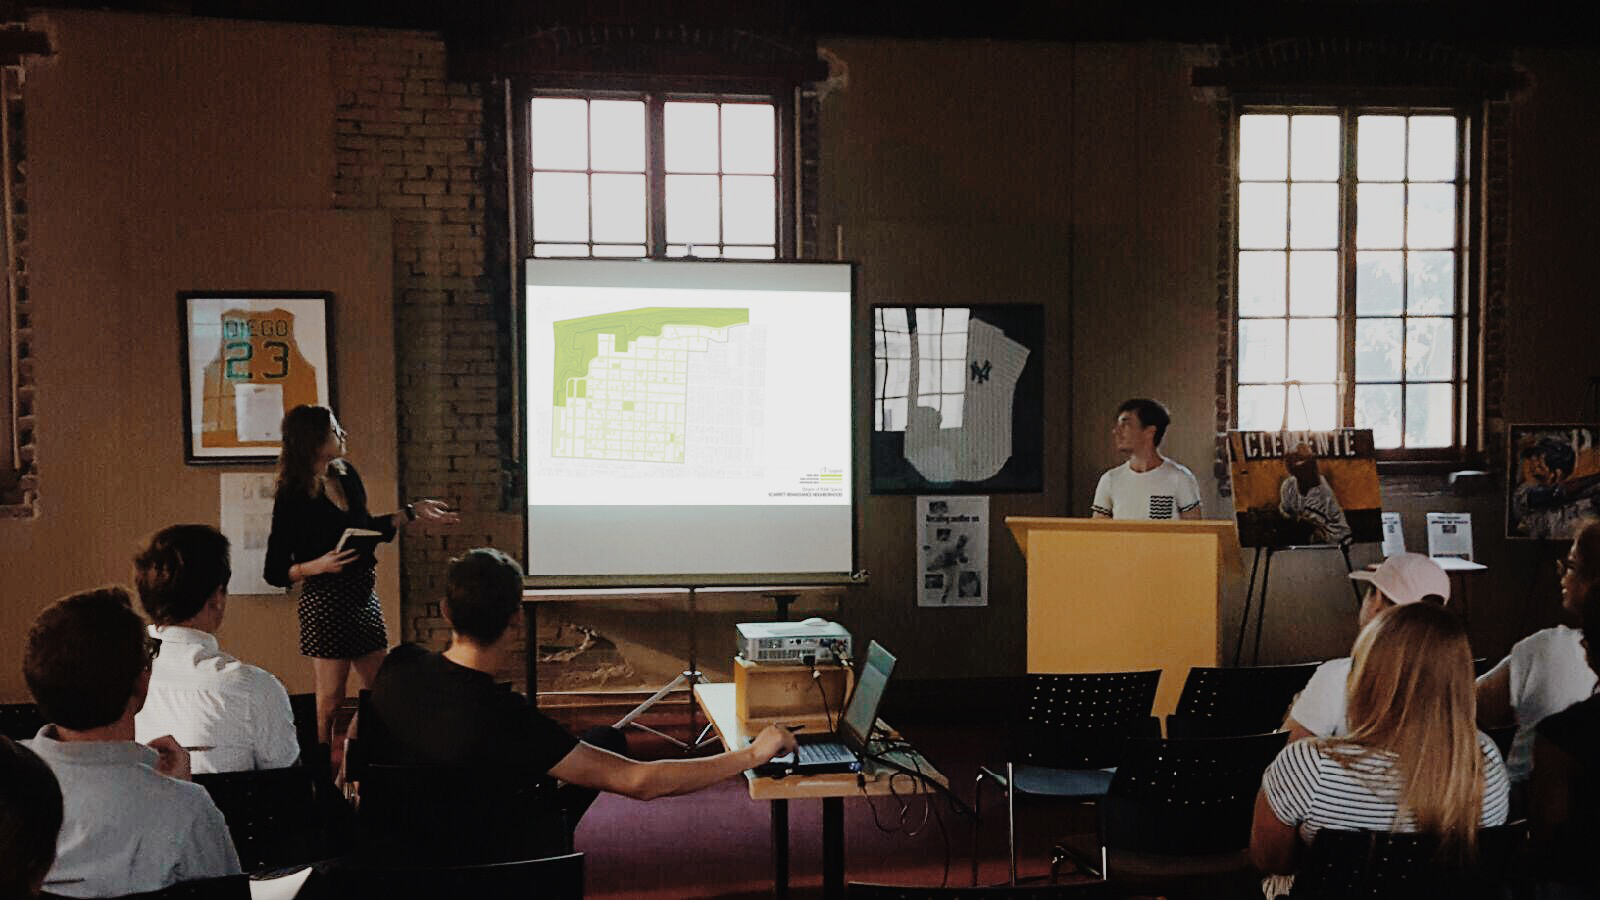 Kylie Schwaller and Travis Snell present various maps and diagrams to explain the studio's data and discoveries about the Scarritt Renaissance neighborhood.